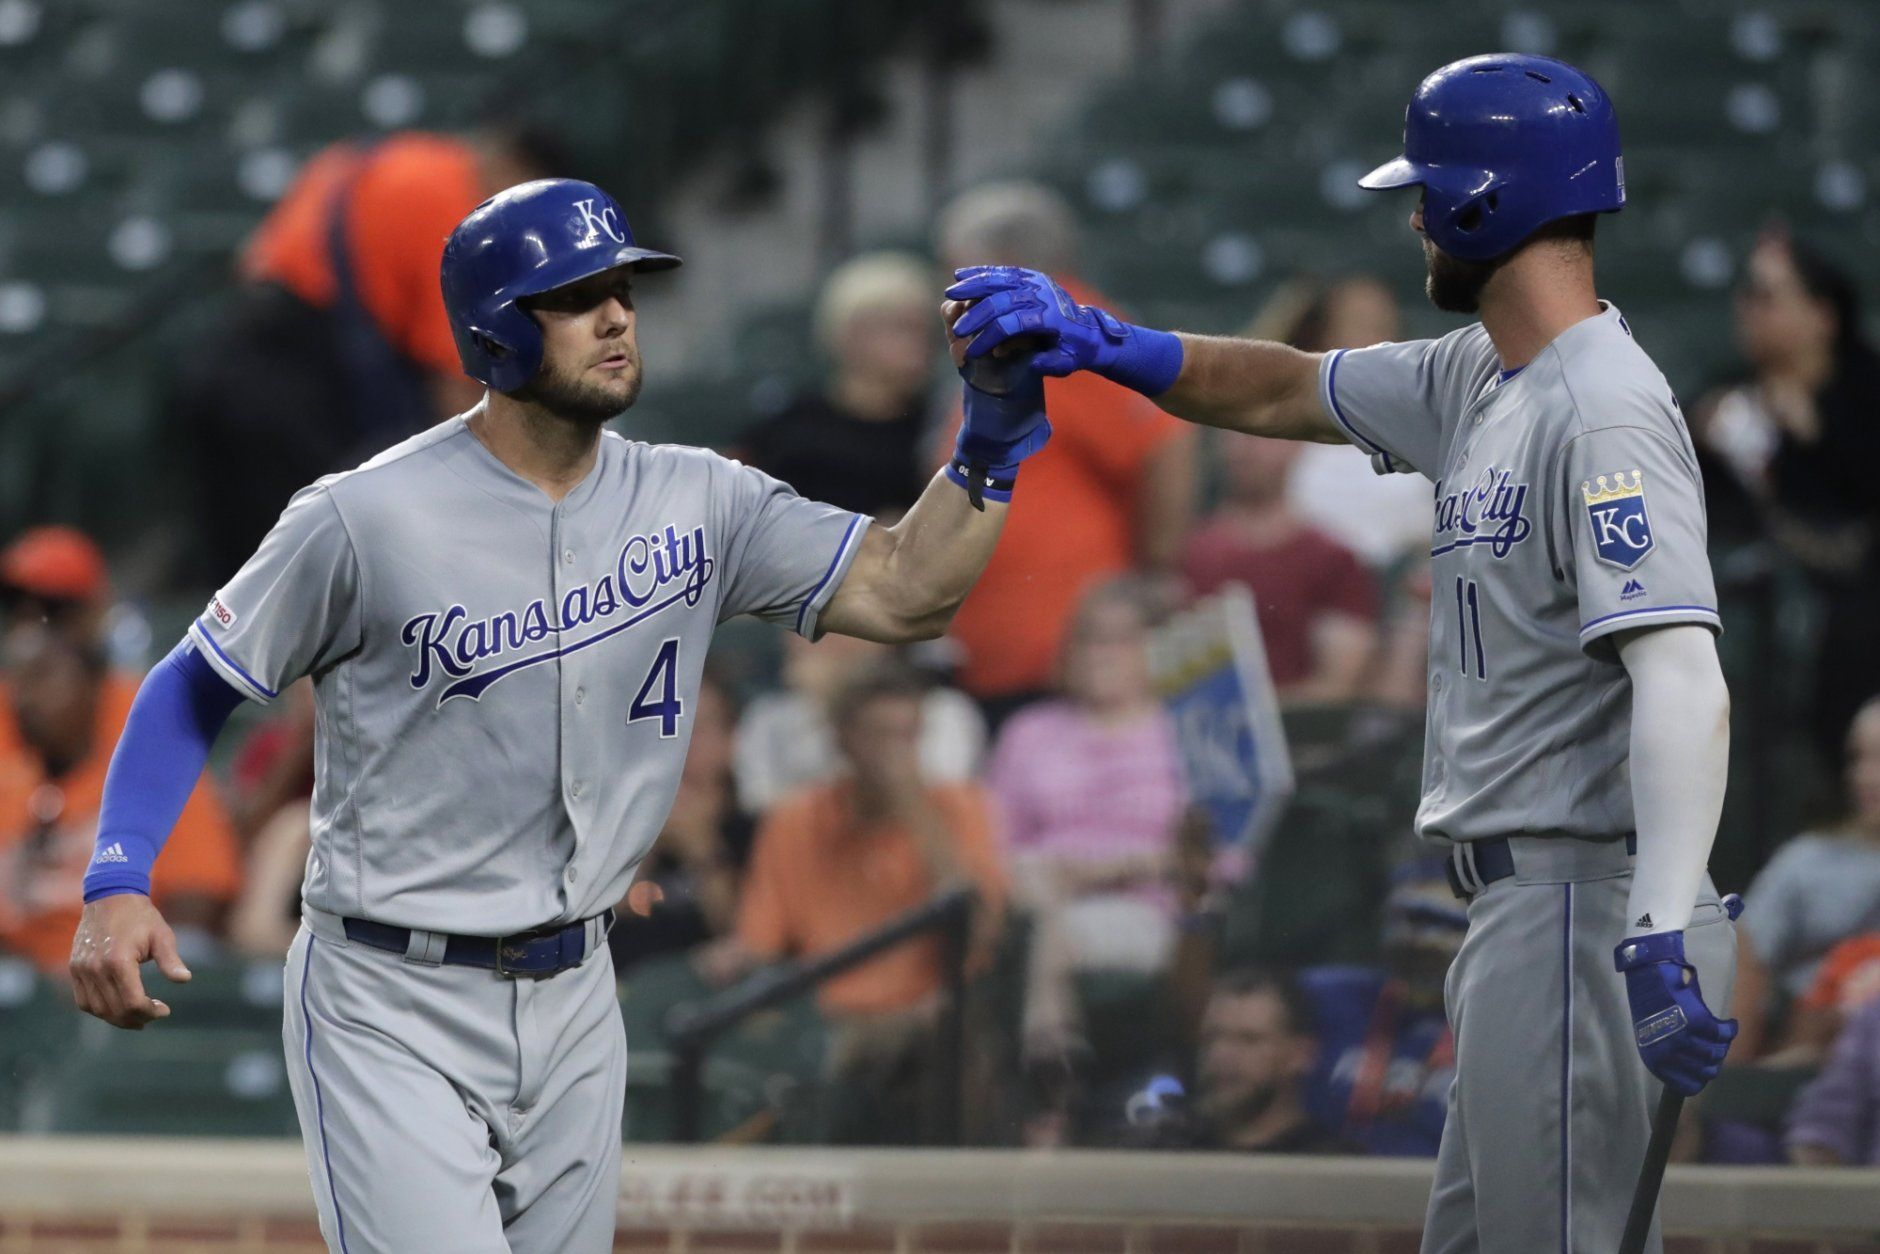 <p>Kansas City Royals&#8217; Alex Gordon, left, is greeted near the dugout by Bubba Starling after scoring on a sacrifice fly by Meibrys Viloria during the second inning of the team&#8217;s baseball game against the Baltimore Orioles, Tuesday, Aug. 20, 2019, in Baltimore.</p>